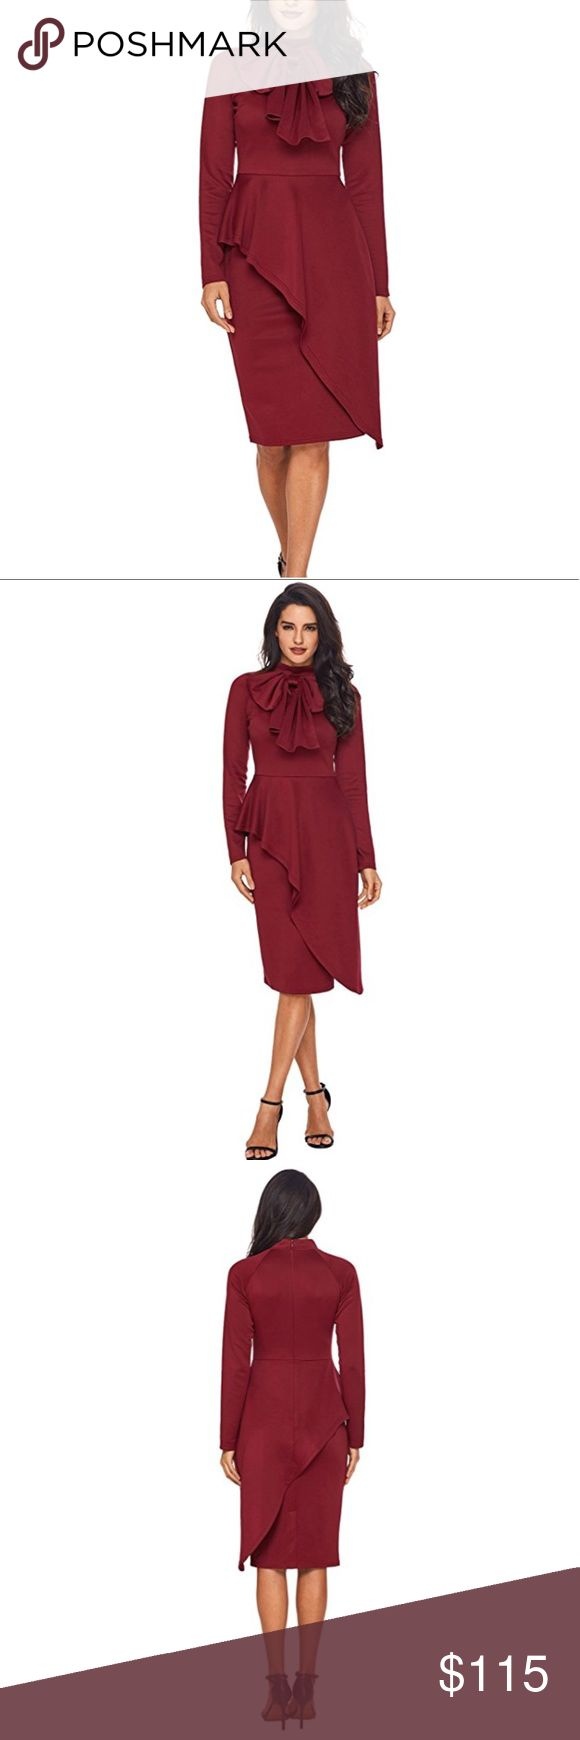 ❤️Red Bow Long-sleeve Dress❤️ Beautiful Red neck bow dress. Says size 14 but runs small. Fits a size 10/12. Beautifully eventuating curves and covers mid section with peplum. Very classy, chic and rare design. Long sleeve. You'll definitely get lots of compliments on this unique style dress. Brand new. Dresses Midi